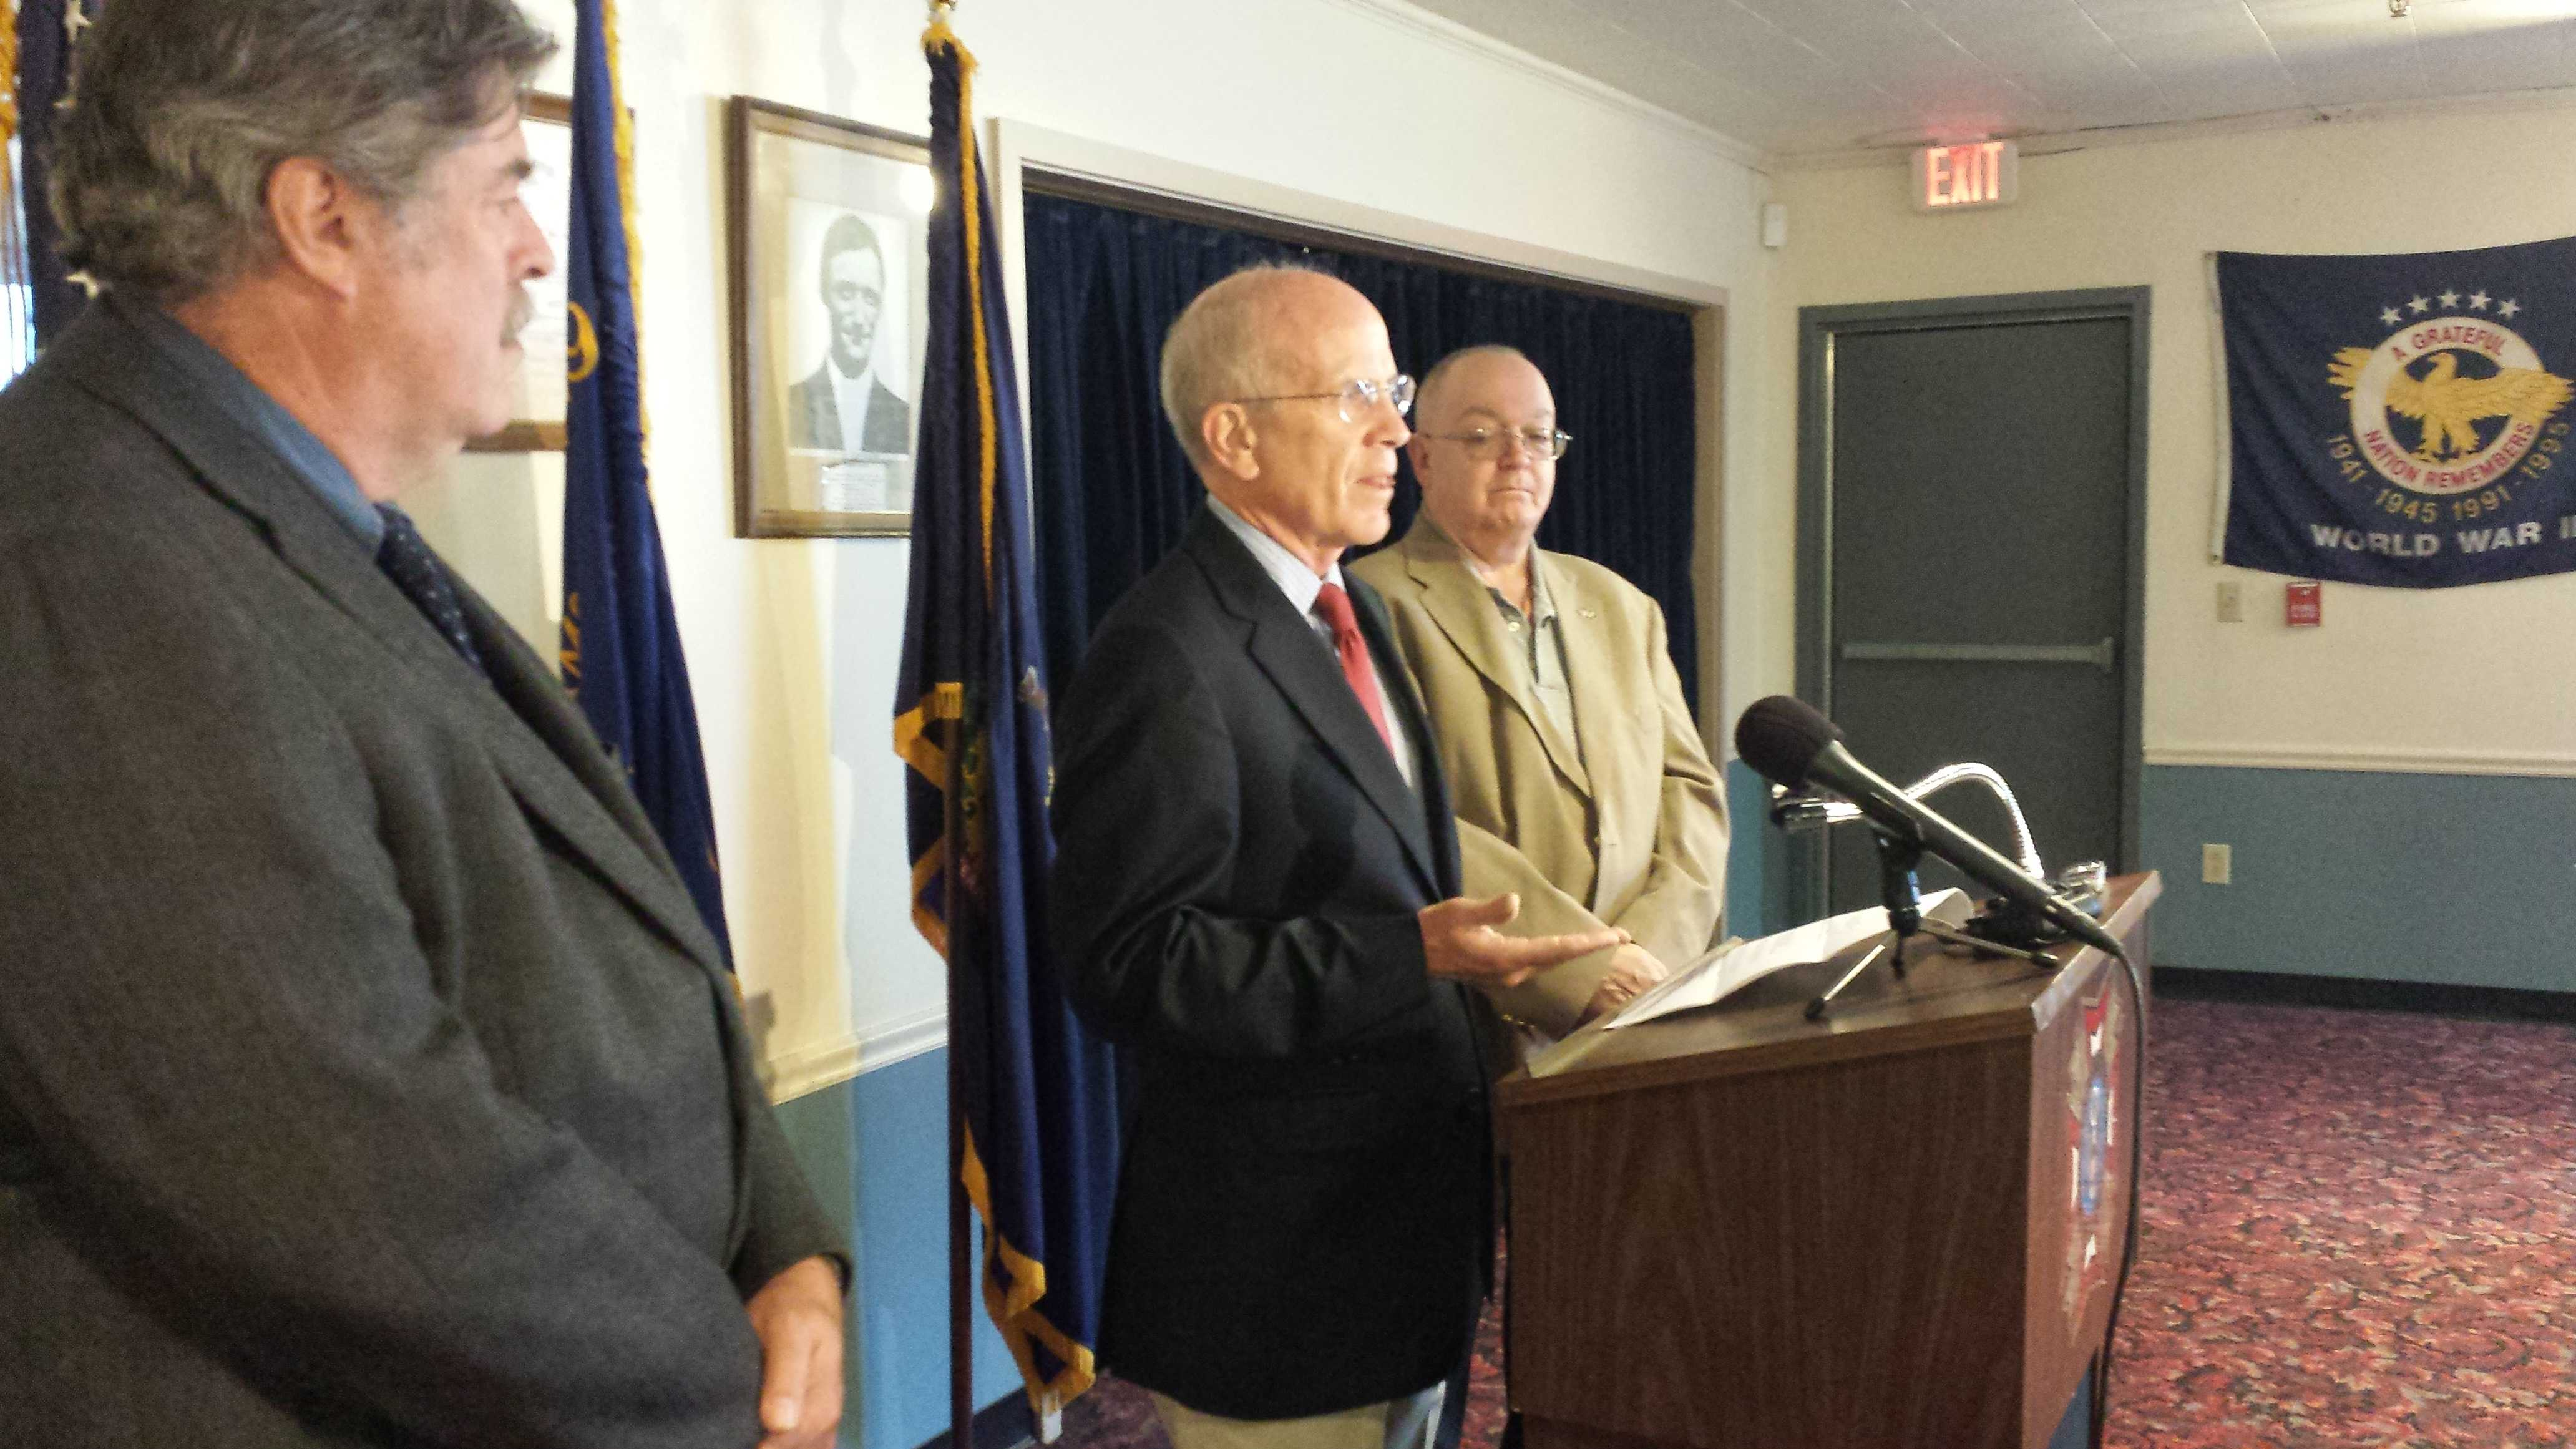 U.S. Rep. Peter Welch at a news conference at the VFW in Montpelier, with Vt. Veterans Services Director Richard Reed (left) and Bob Nicodemus, Veterans Advocate at the DAV  in White River Junction.